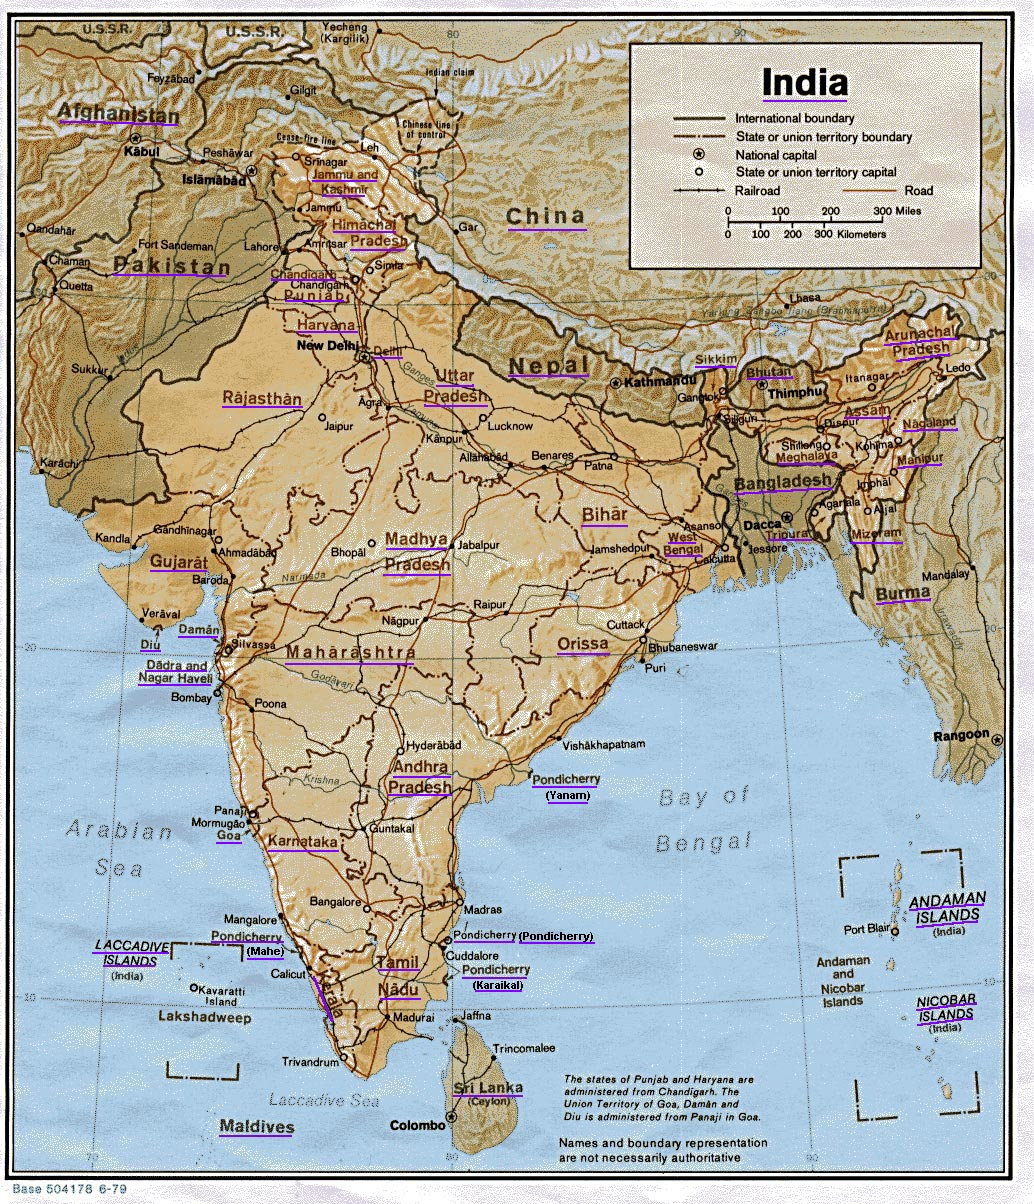 India Map Download Pdf on india lotus, india battles, india ganges, india red dot, india typhoon, india rivers, india asia, india sugar cane, india tropical, india singles, india rooster, india information, india chariot, india geography, india poppy, india judo girl, india space shuttle, india grasshopper, india airports, india crown,